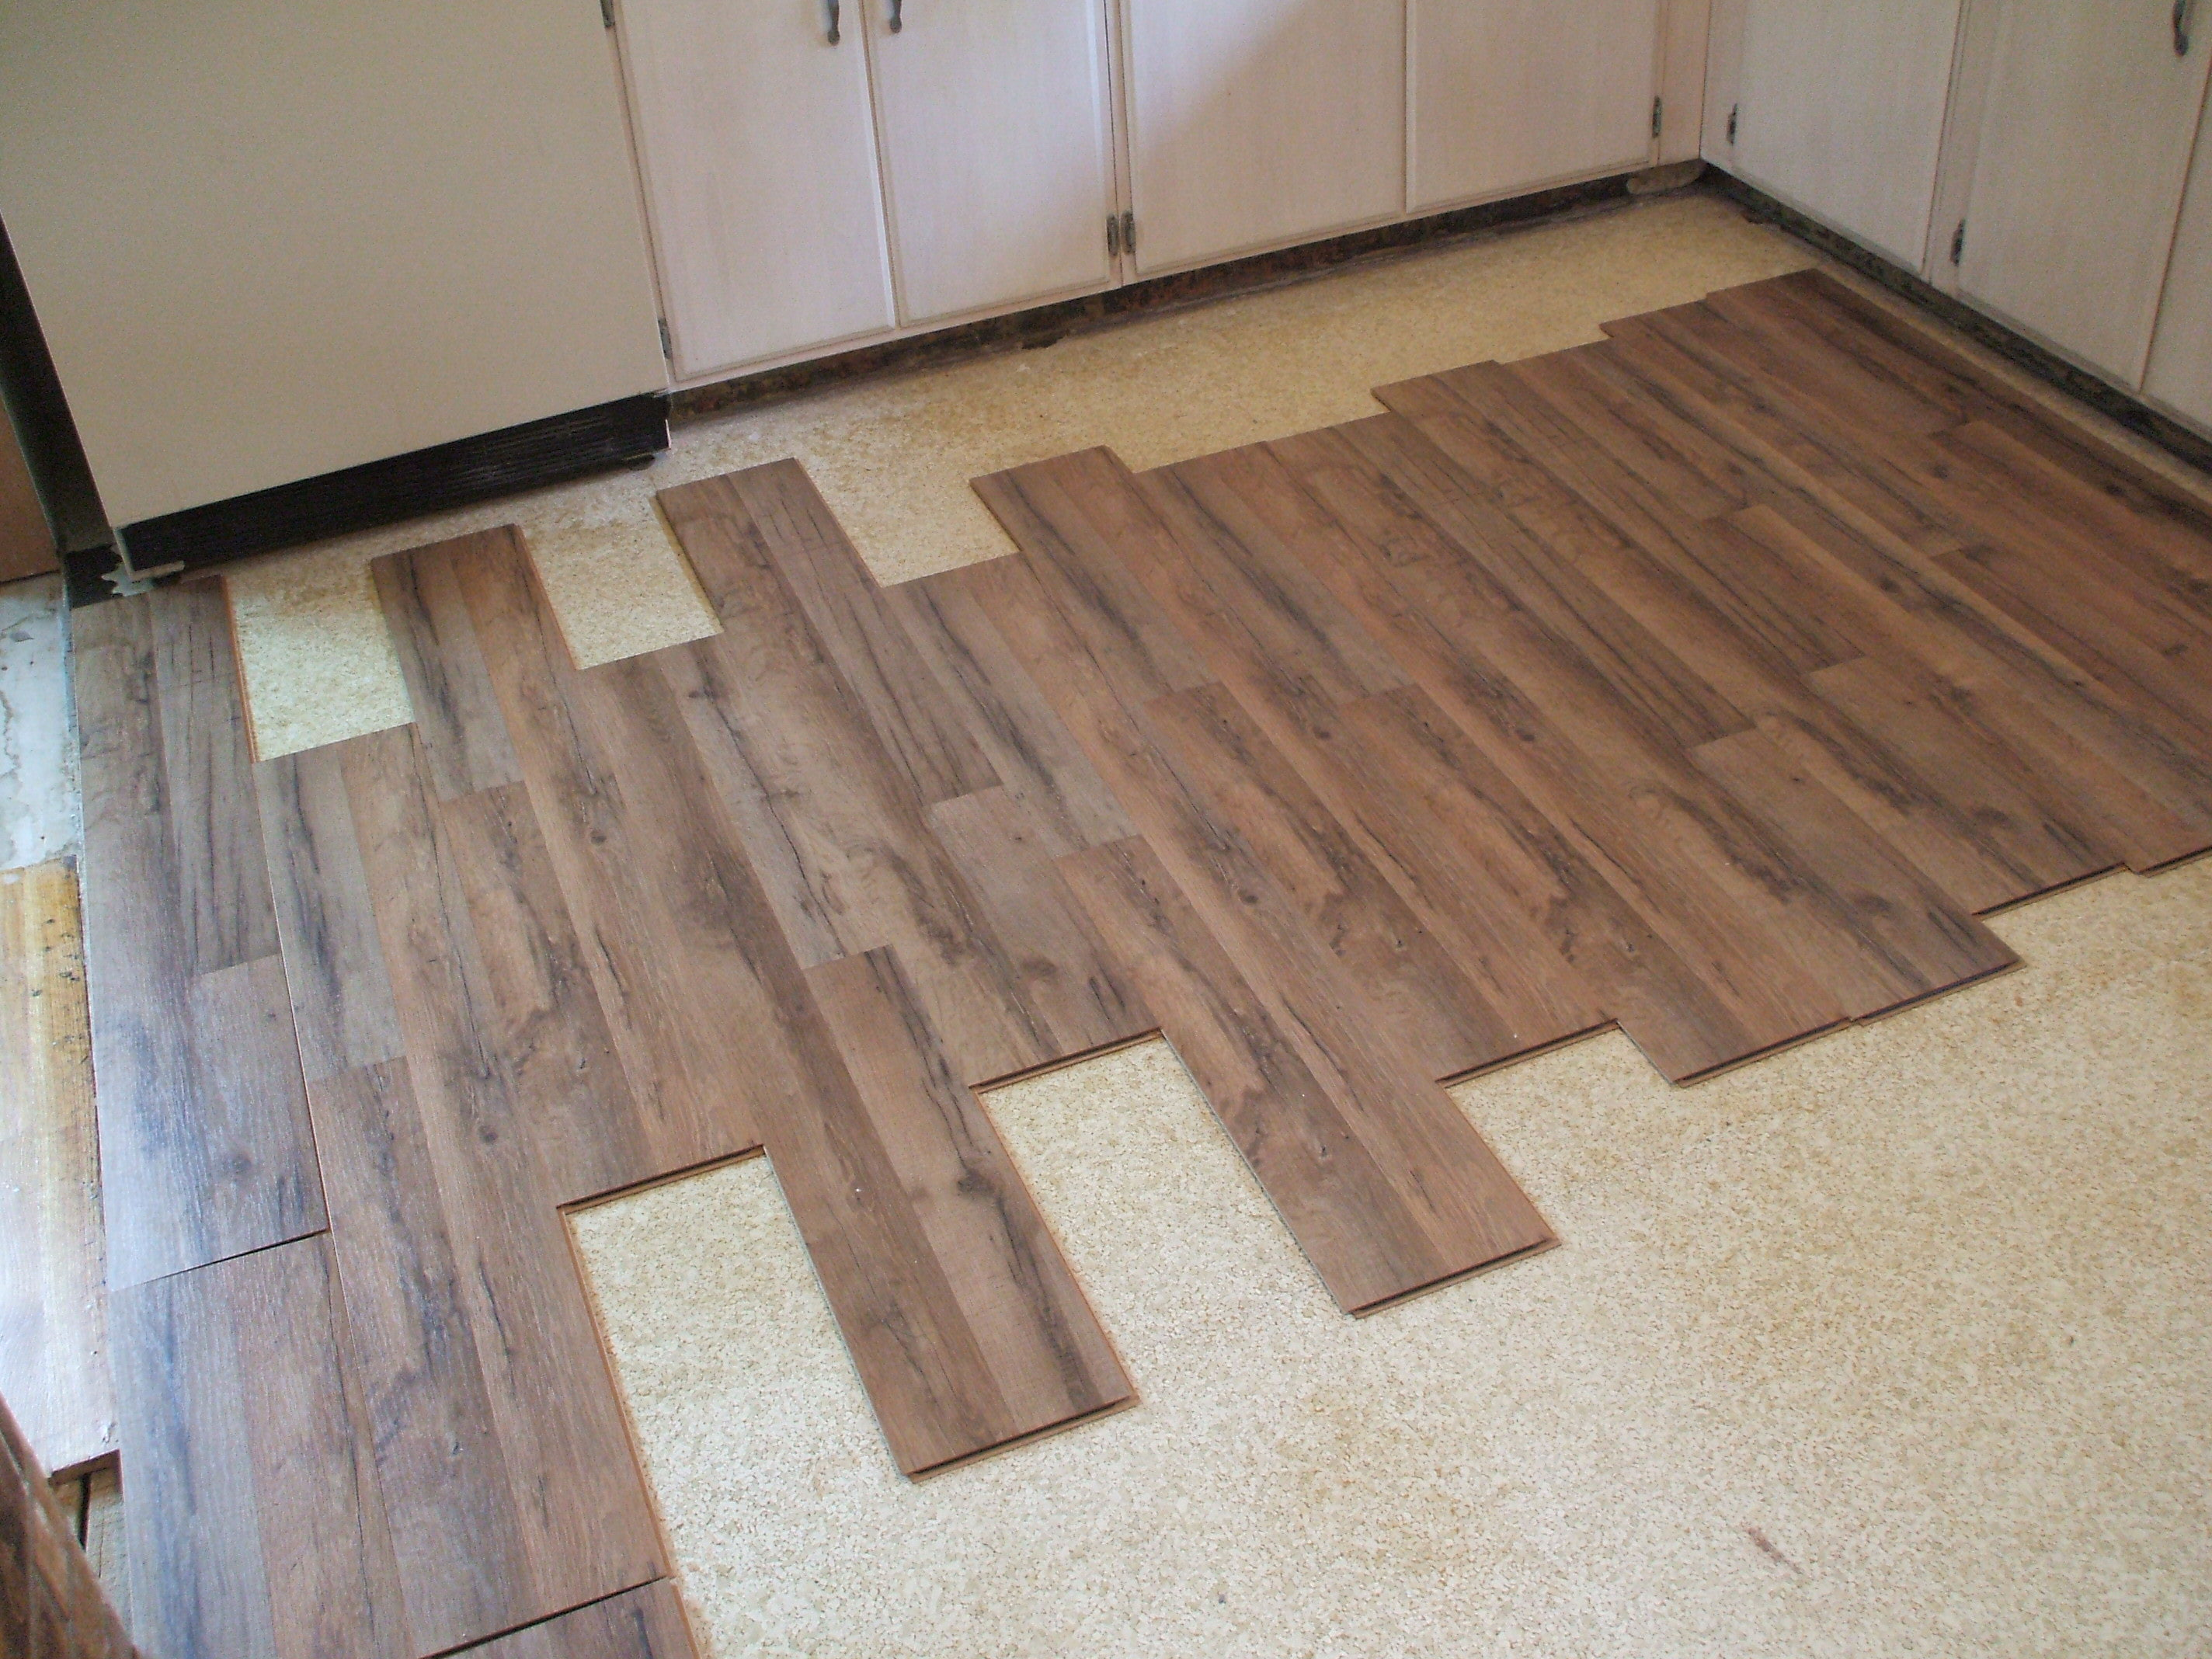 flooring options for your rental home which is best - Best Laminate Wood Floors